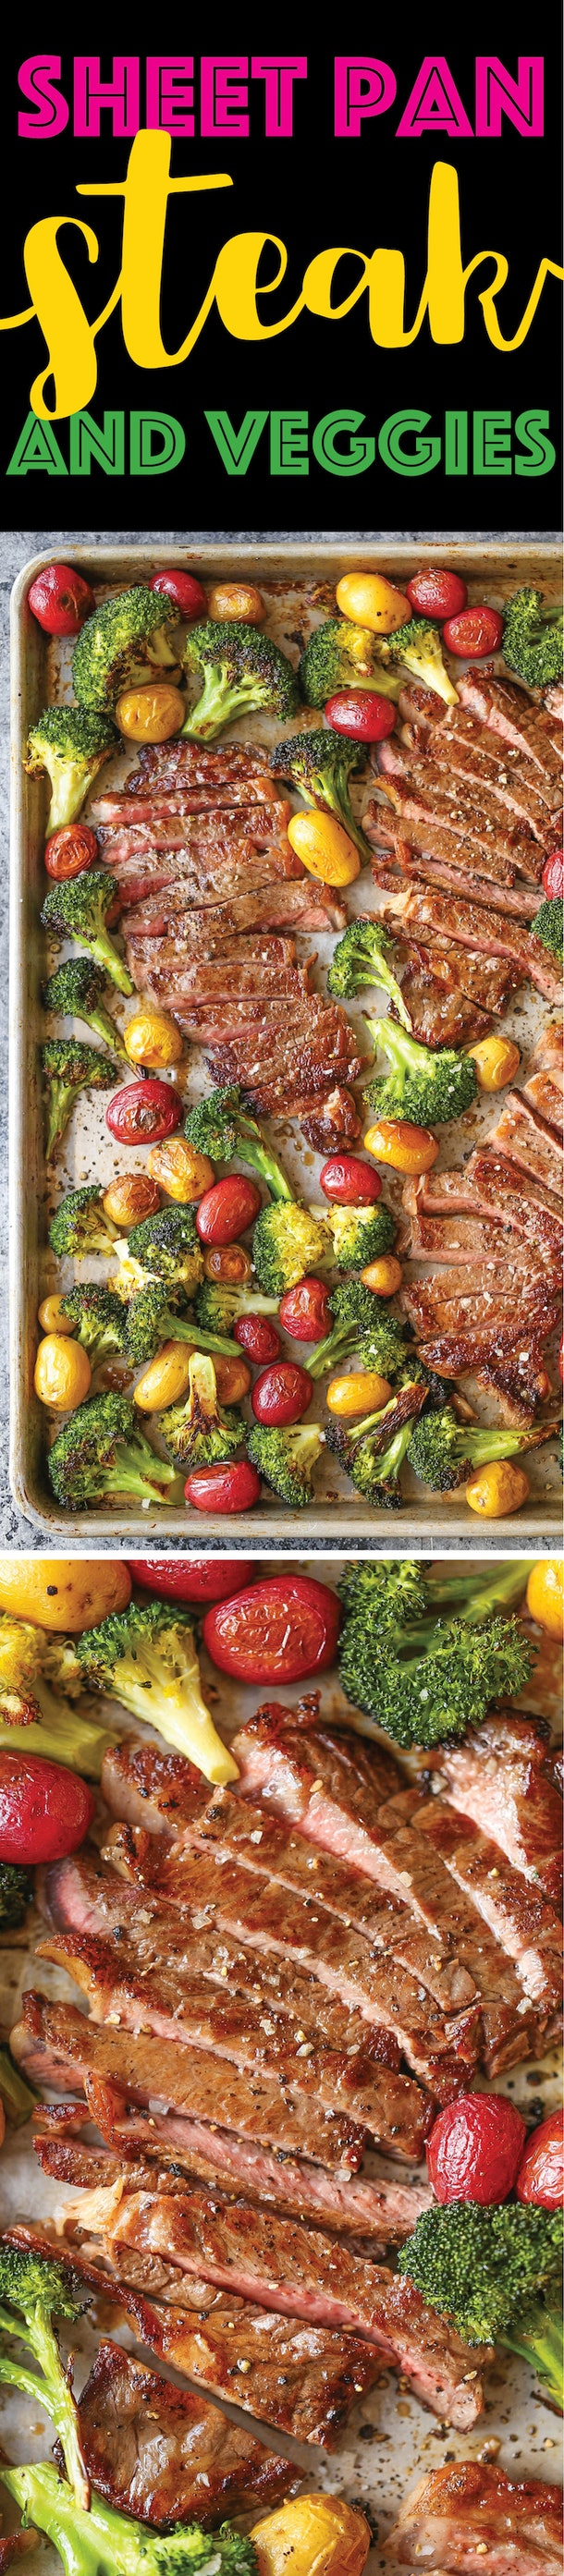 sheet pan recipes with steak, sheet pan steak and veggies